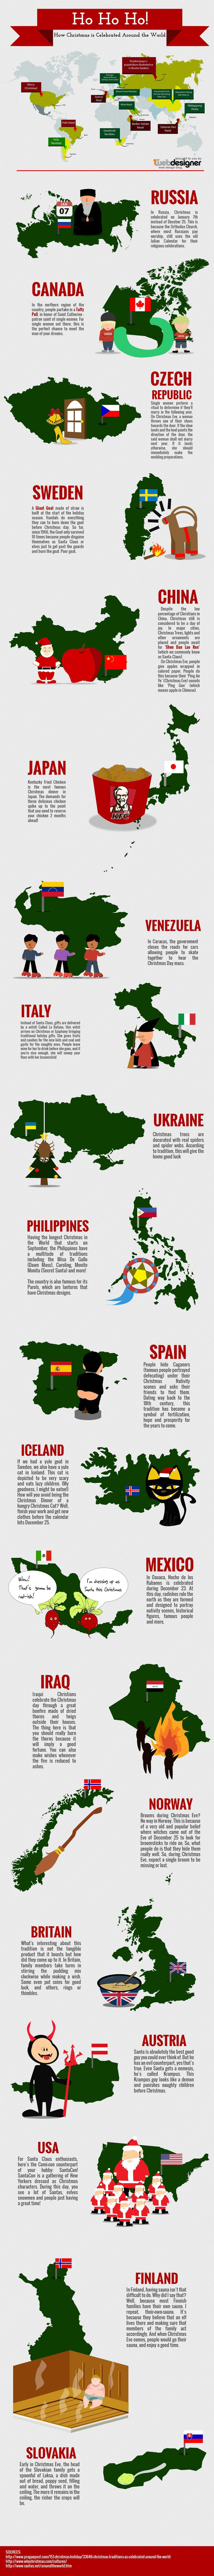 How Christmas is Celebrated Around the Globe [INFOGRAPHIC]